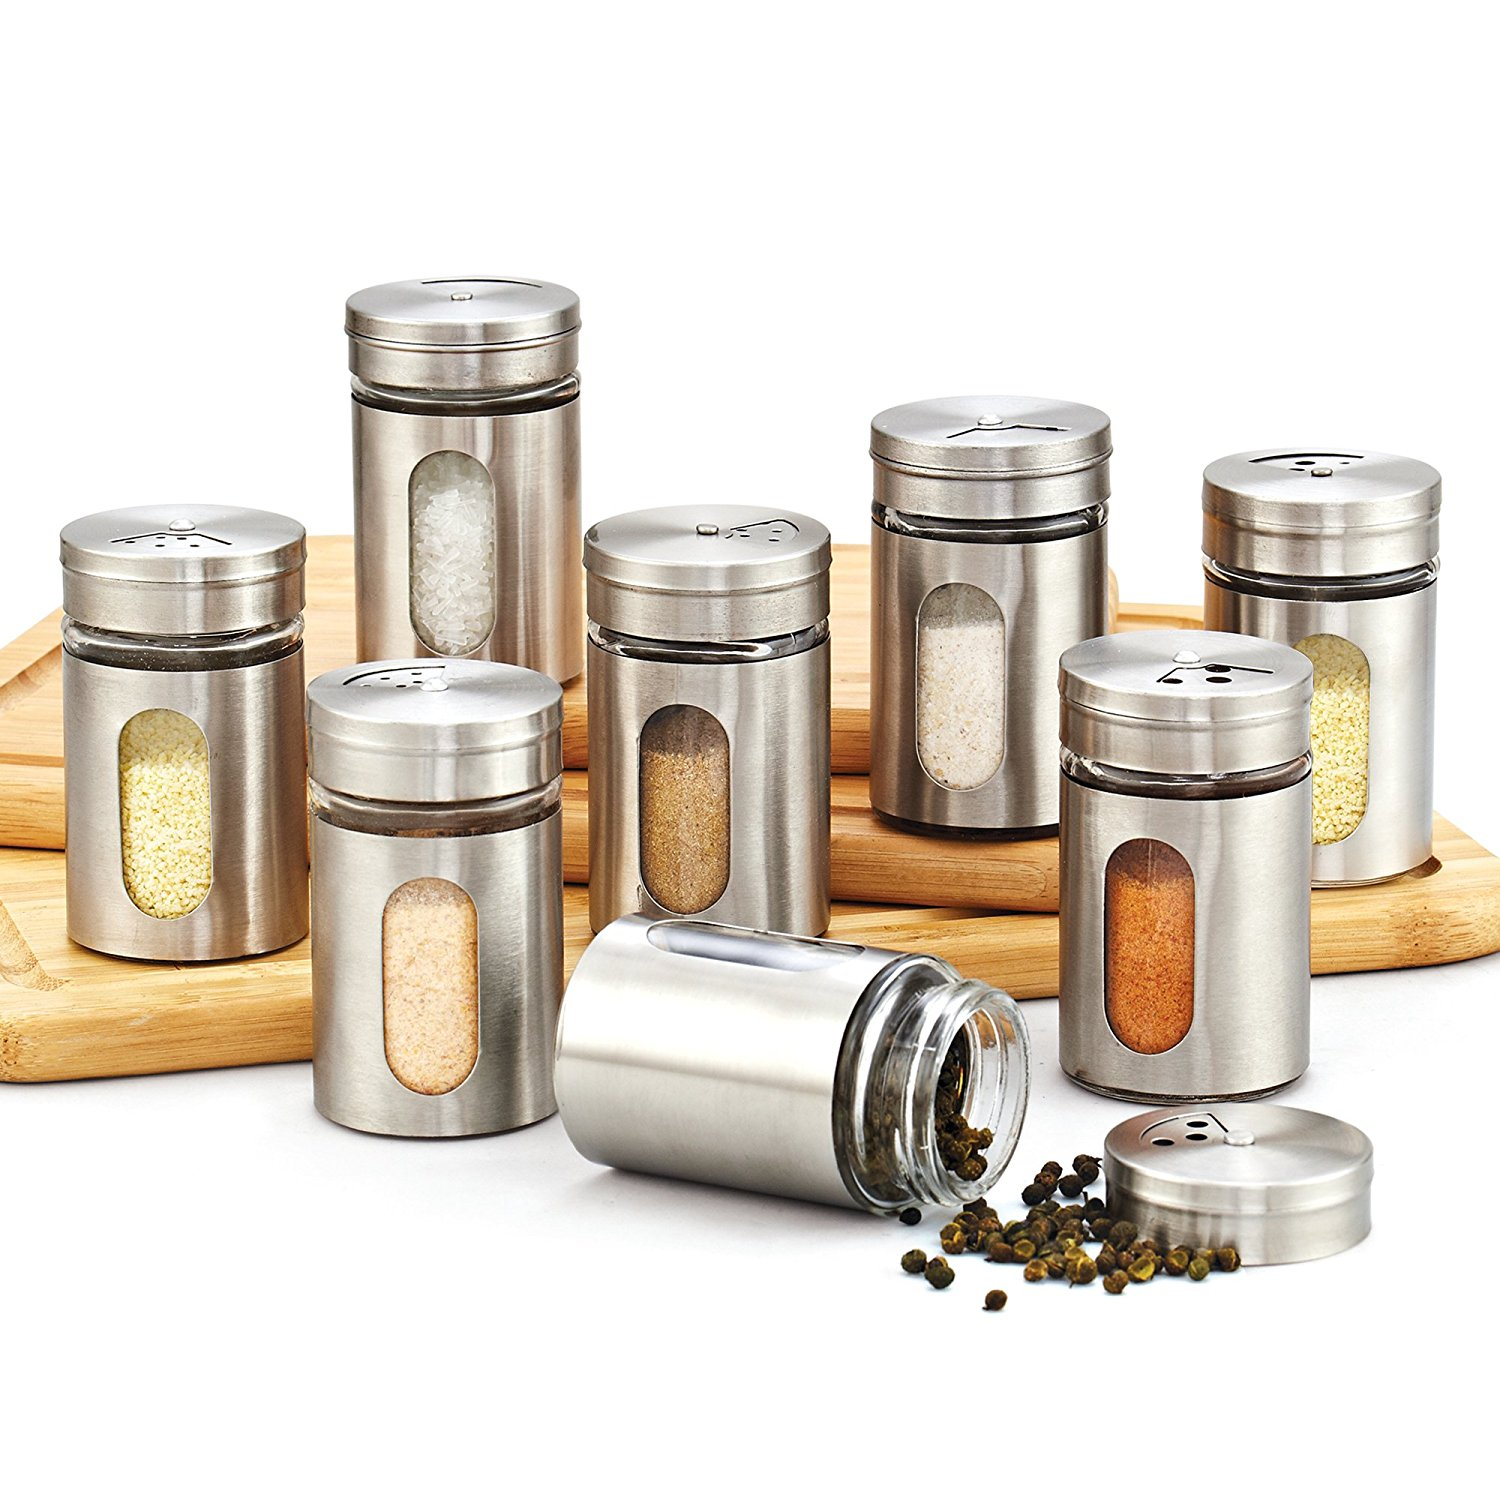 Cook N Home 8-Piece Window Spice Bottle Set with Stainless Steel Cap